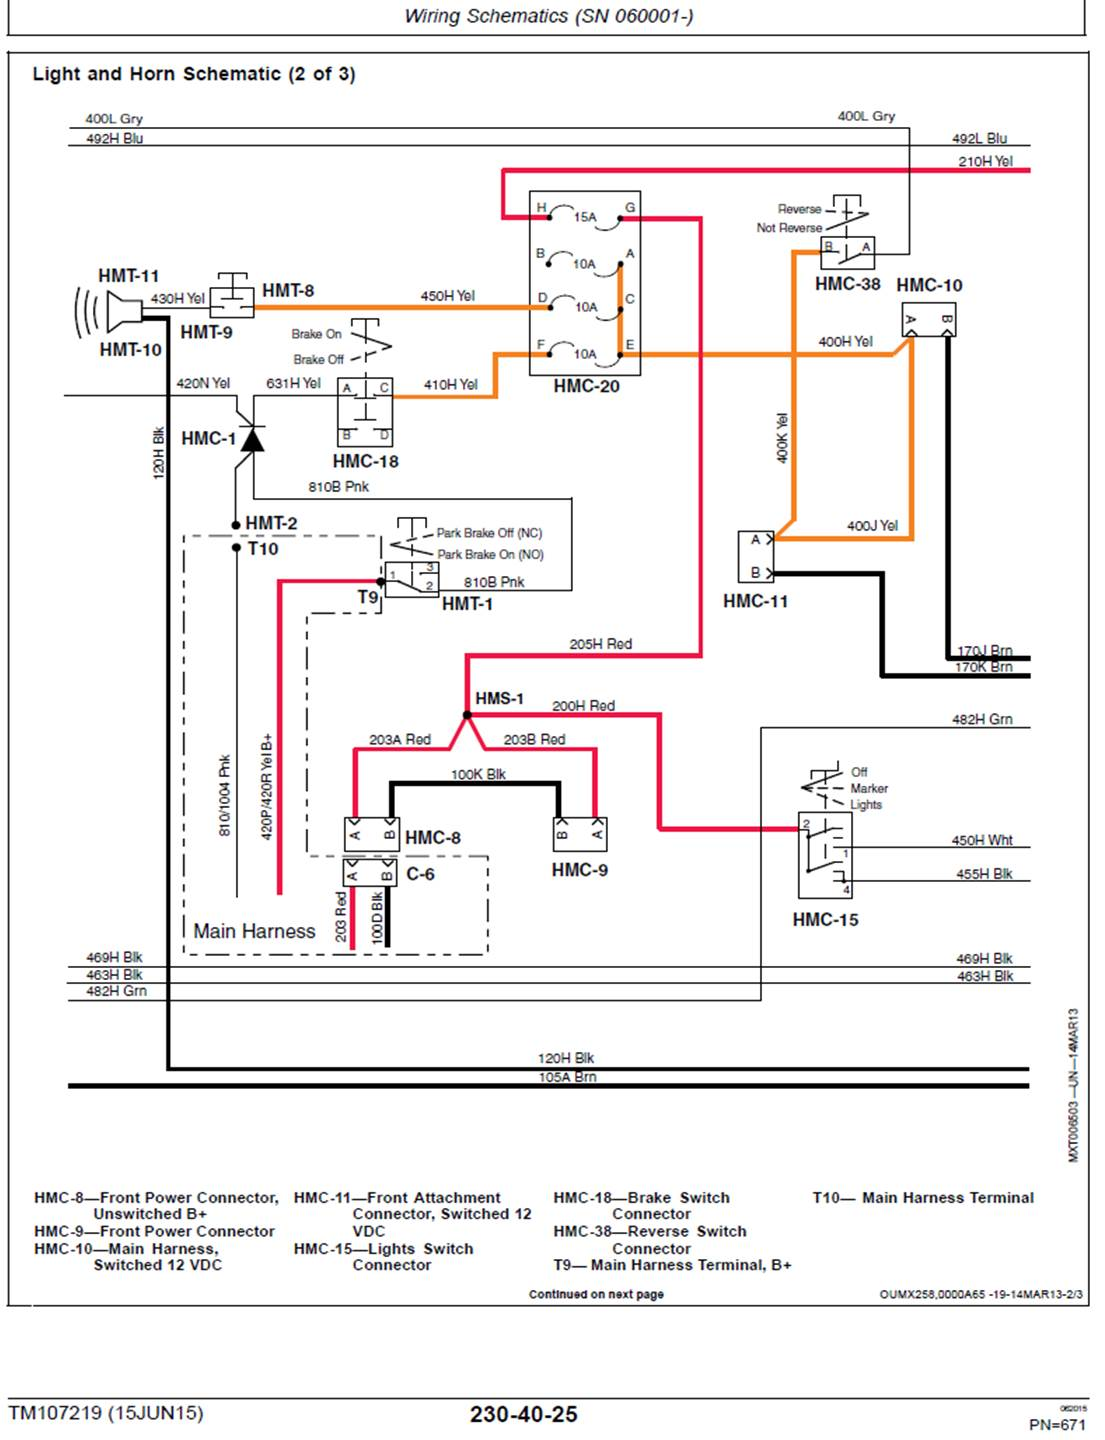 3762d1477667731 wiring horn blinkers horn wiring 3 wiring ? horn & blinkers john deere gator forums John Deere Gator Starter Wiring Diagram at bayanpartner.co